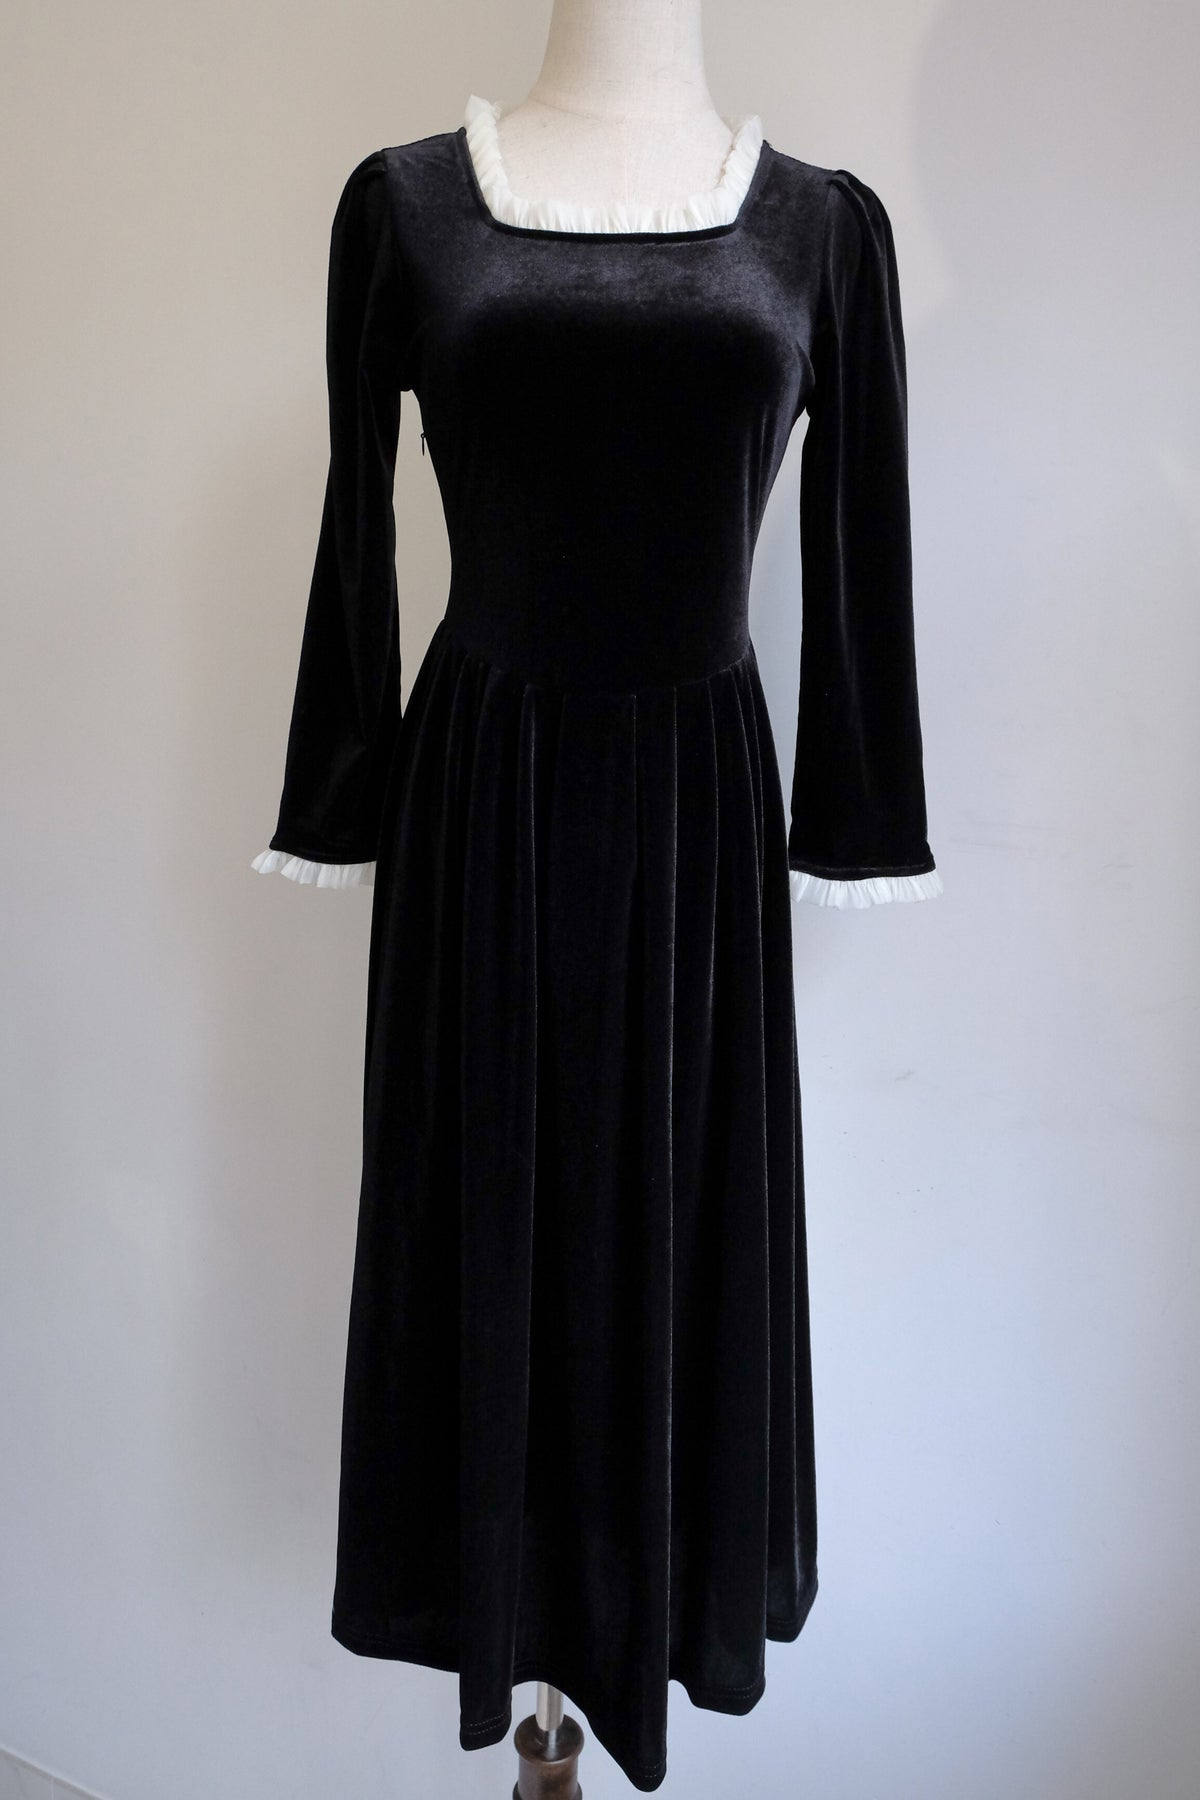 Image of SAMPLE SALE - Unreleased Dress 19